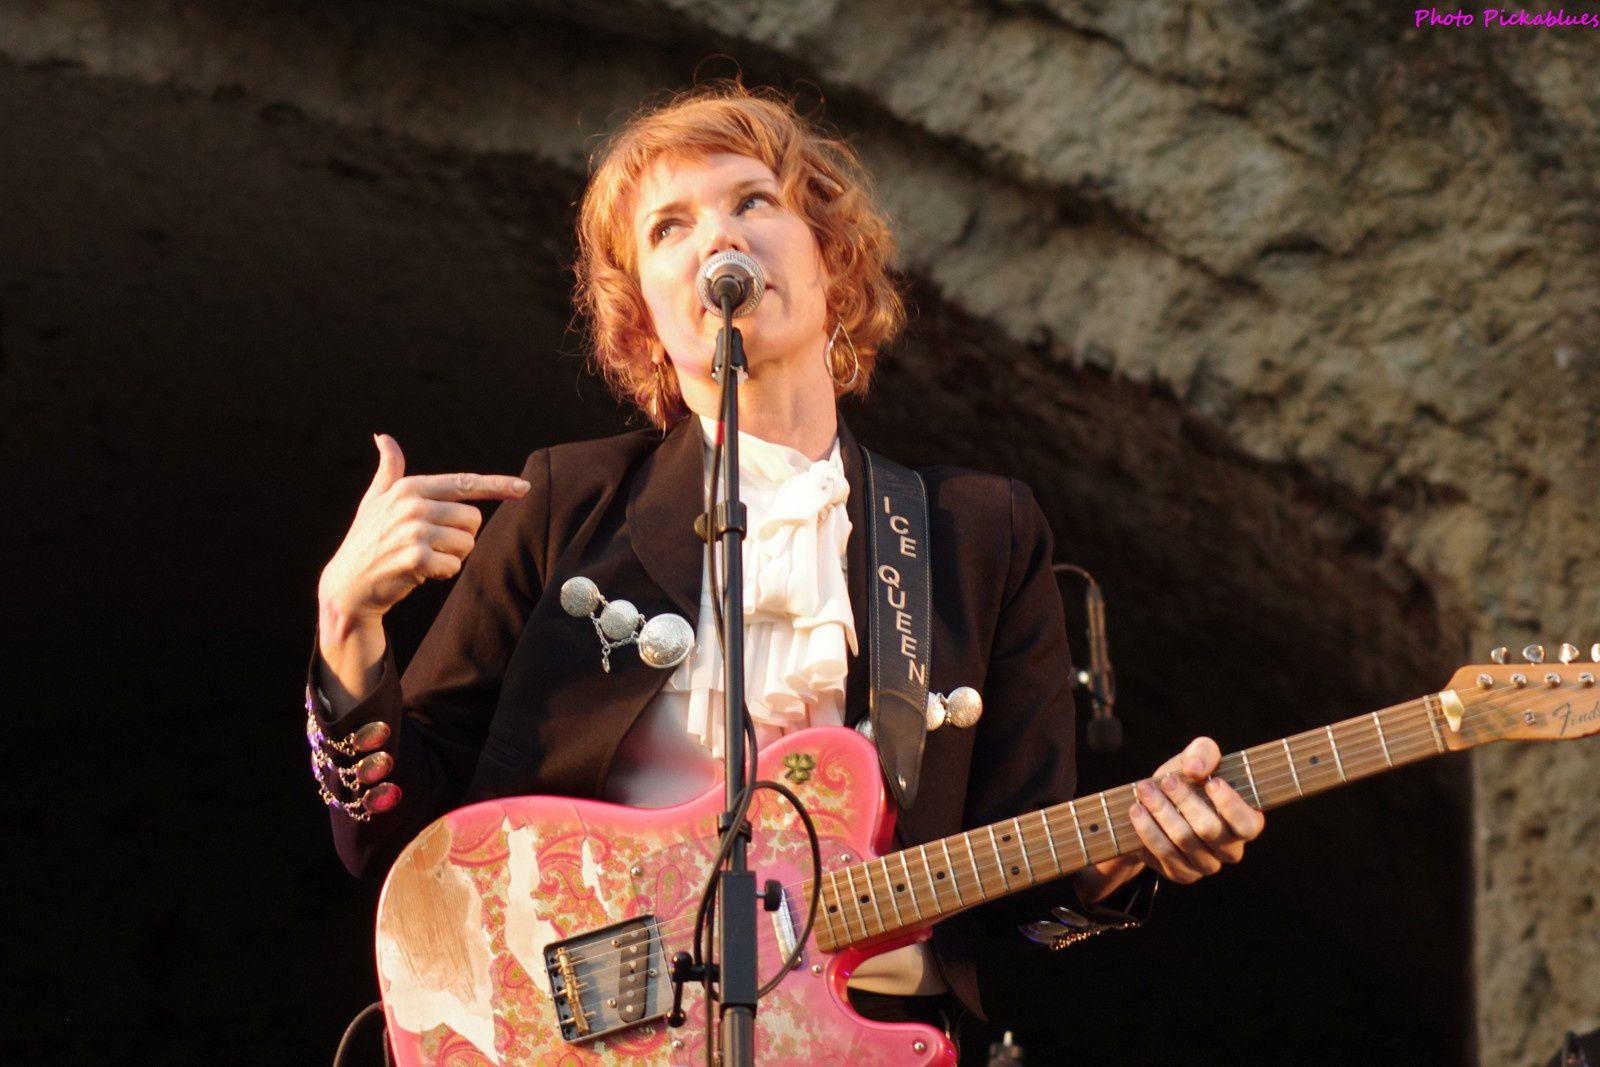 Sue Foley - 15 juin 2018 - Fort du Vert Galant, Wambrechies (59)